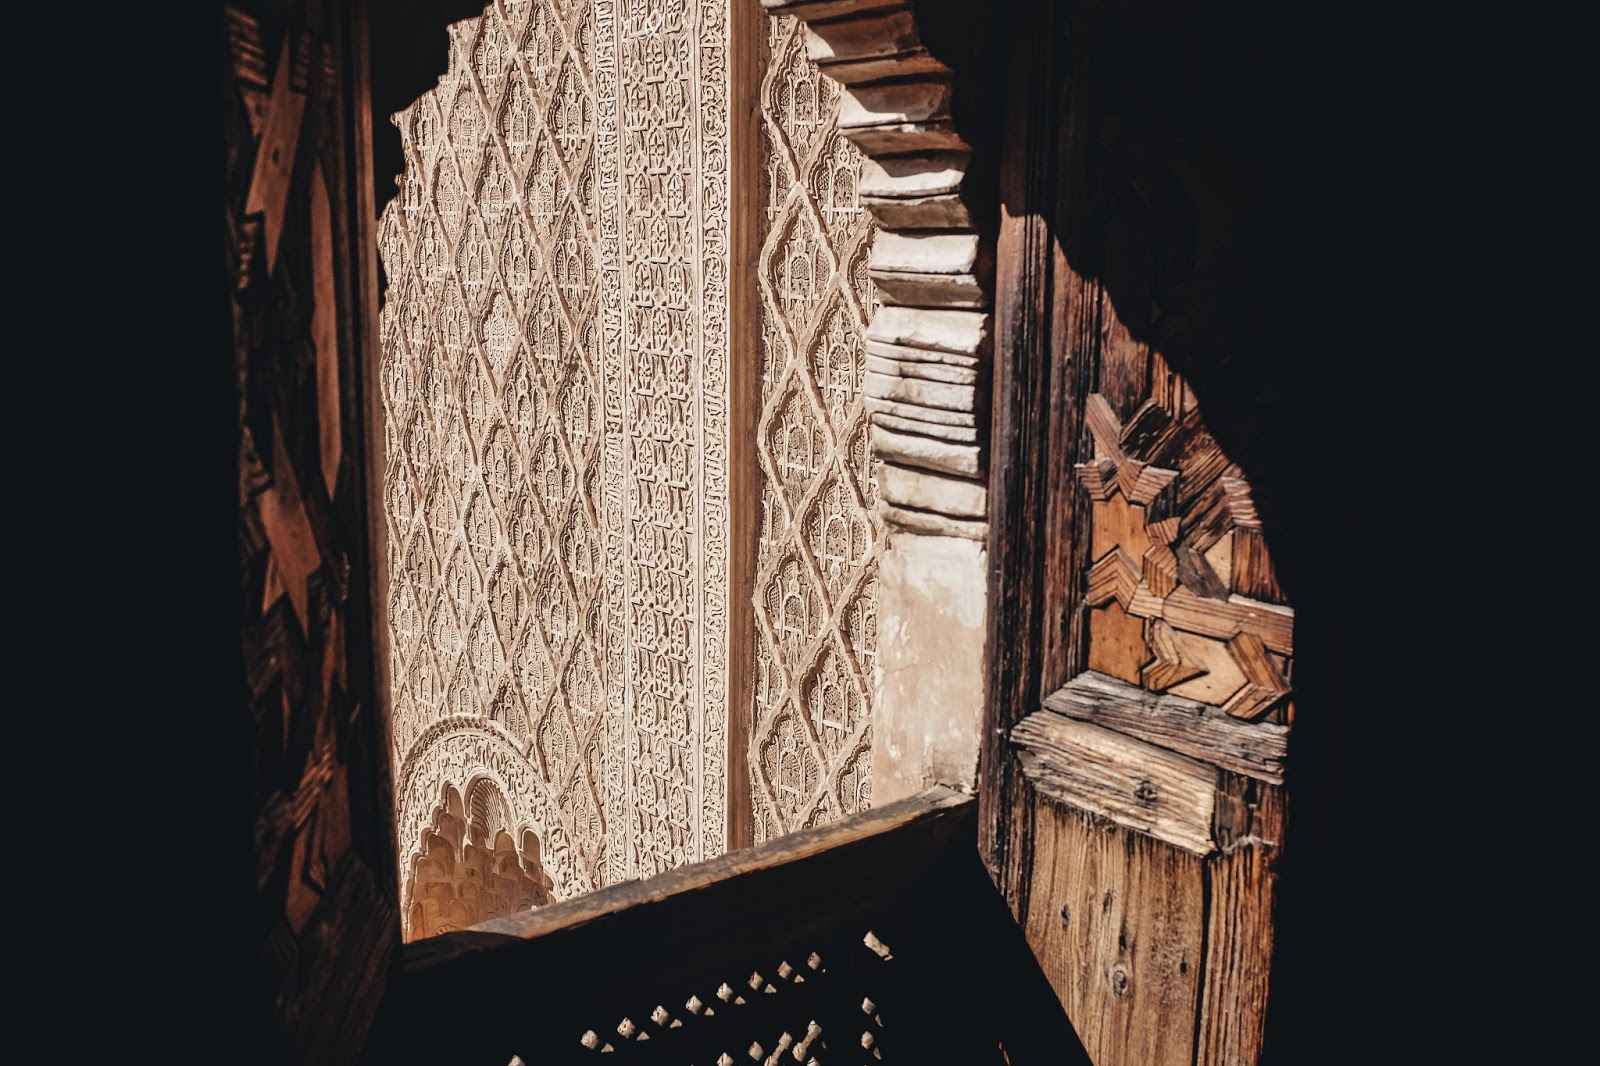 Shot from a dorm room in The Ben Youssef Madrasa Marrakech Morocco